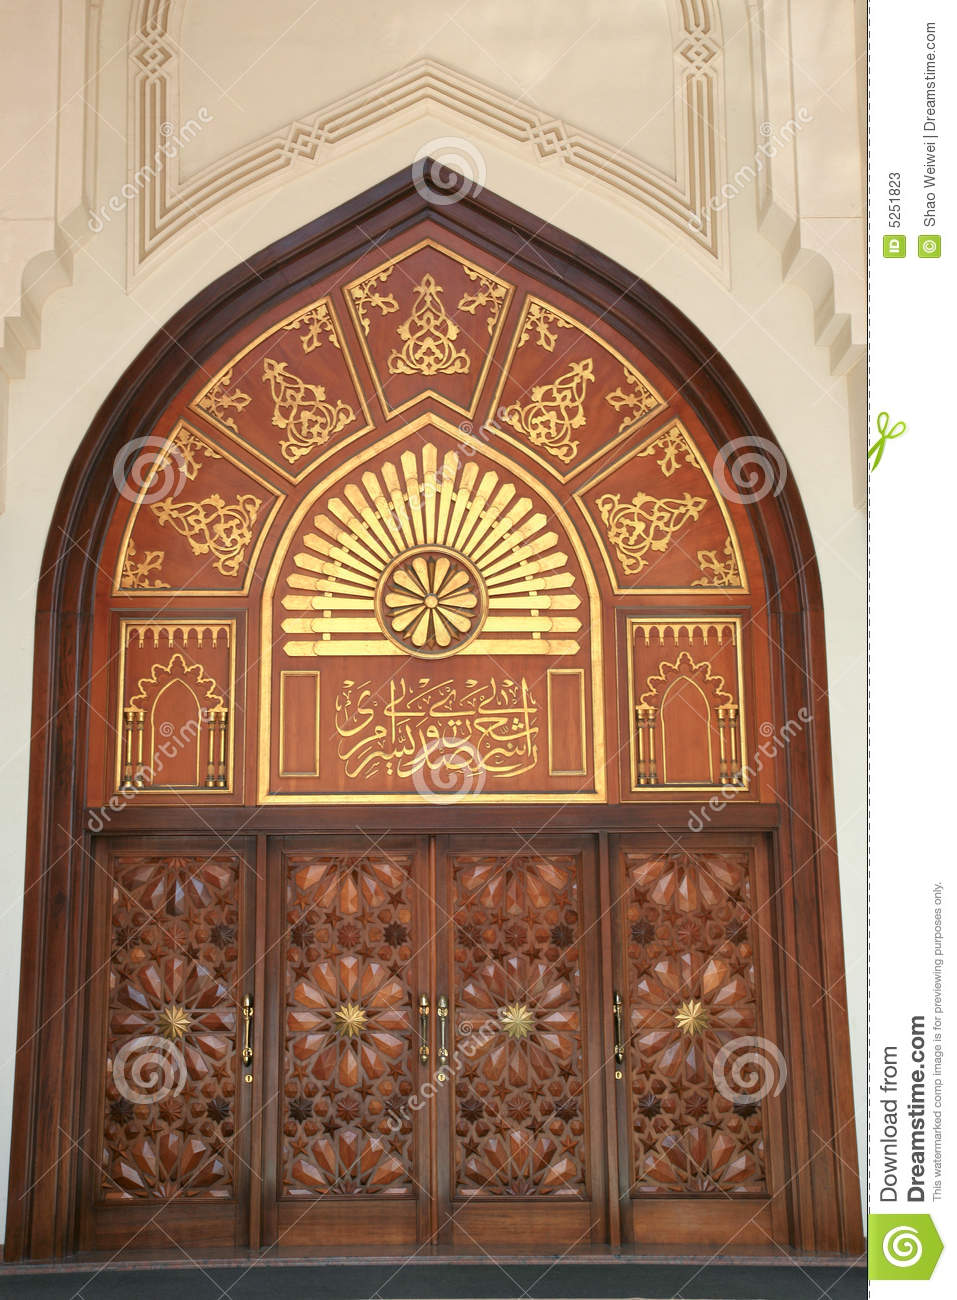 gate muslim Compare 164 hotels near lion's gate in muslim quarter using 8713 real guest reviews earn free nights, get our price guarantee & make booking easier with hotelscom.